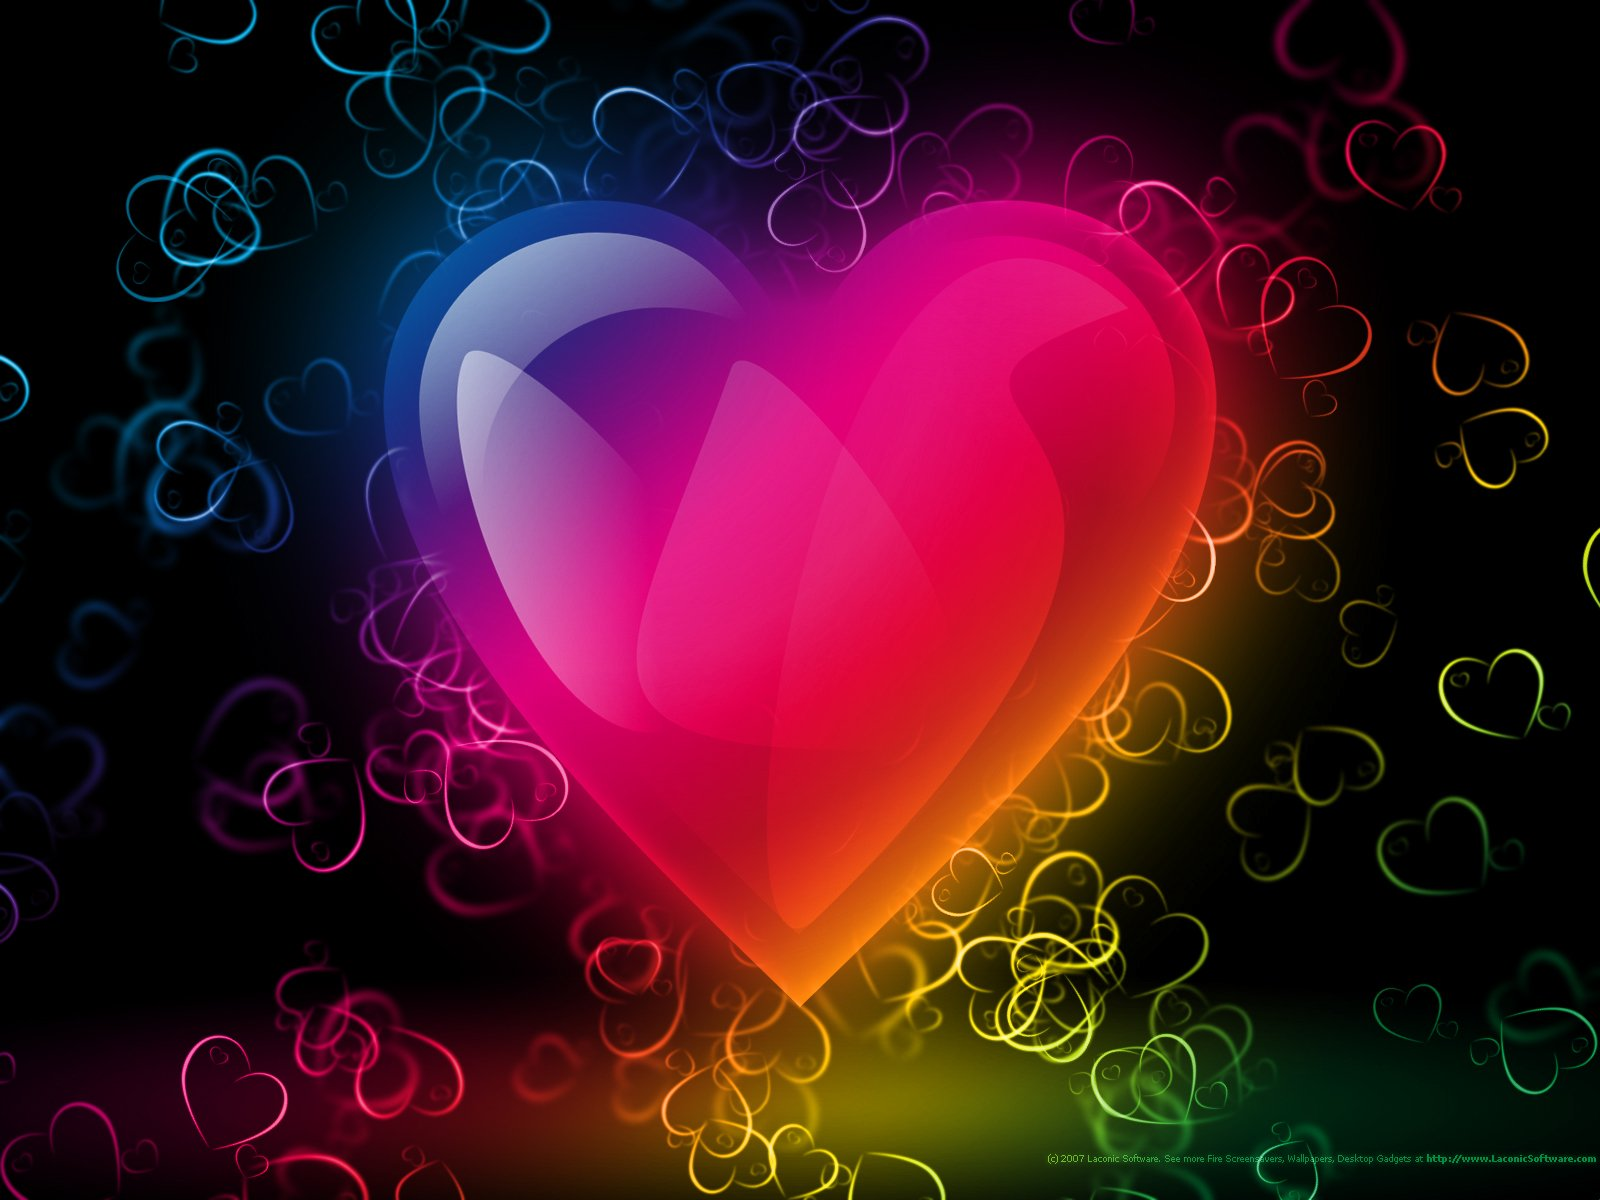 Love Wallpaper For Blackberry curve : colorful Hearts Wallpaper - WallpaperSafari